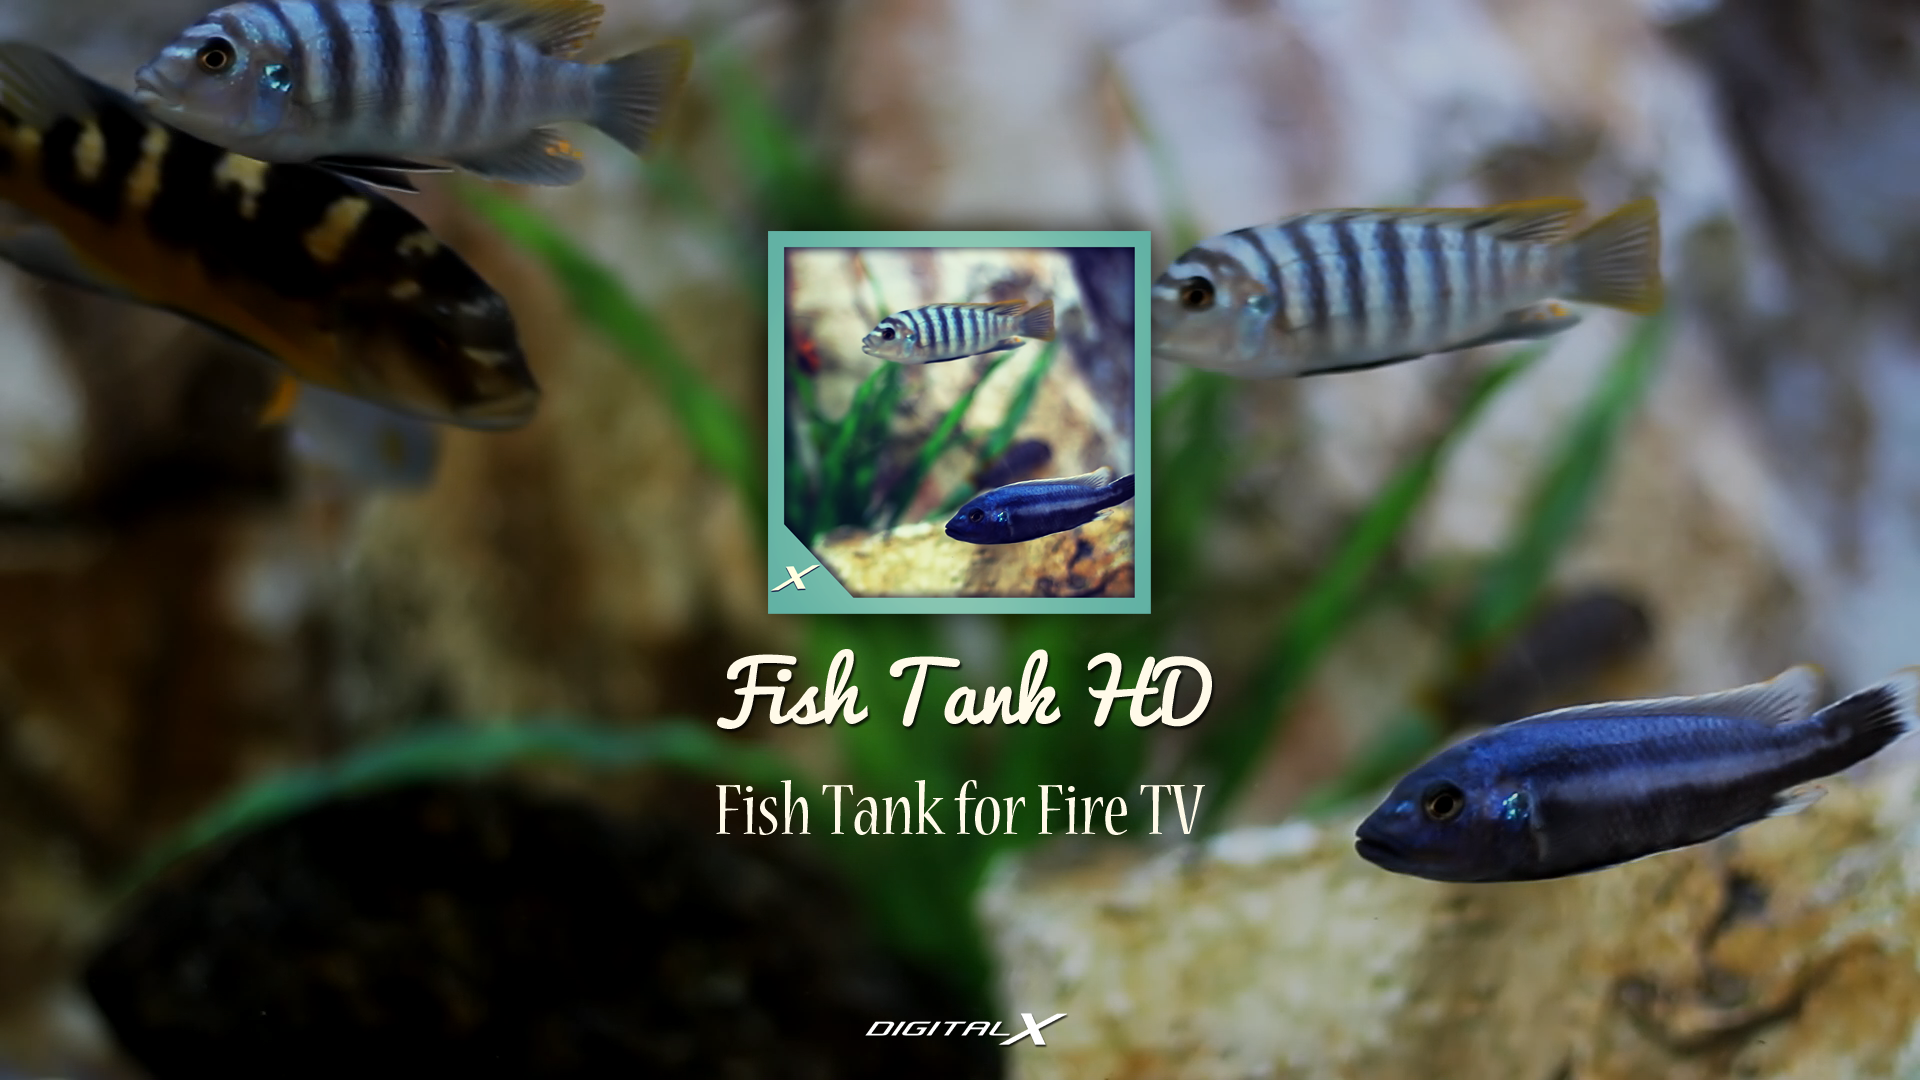 Fish tank for your tv -  The App And Set Your Mood To Blend The App With The Ambience Frames And Color Effects Are Installed Created To Make The Aquarium Even More Realistic